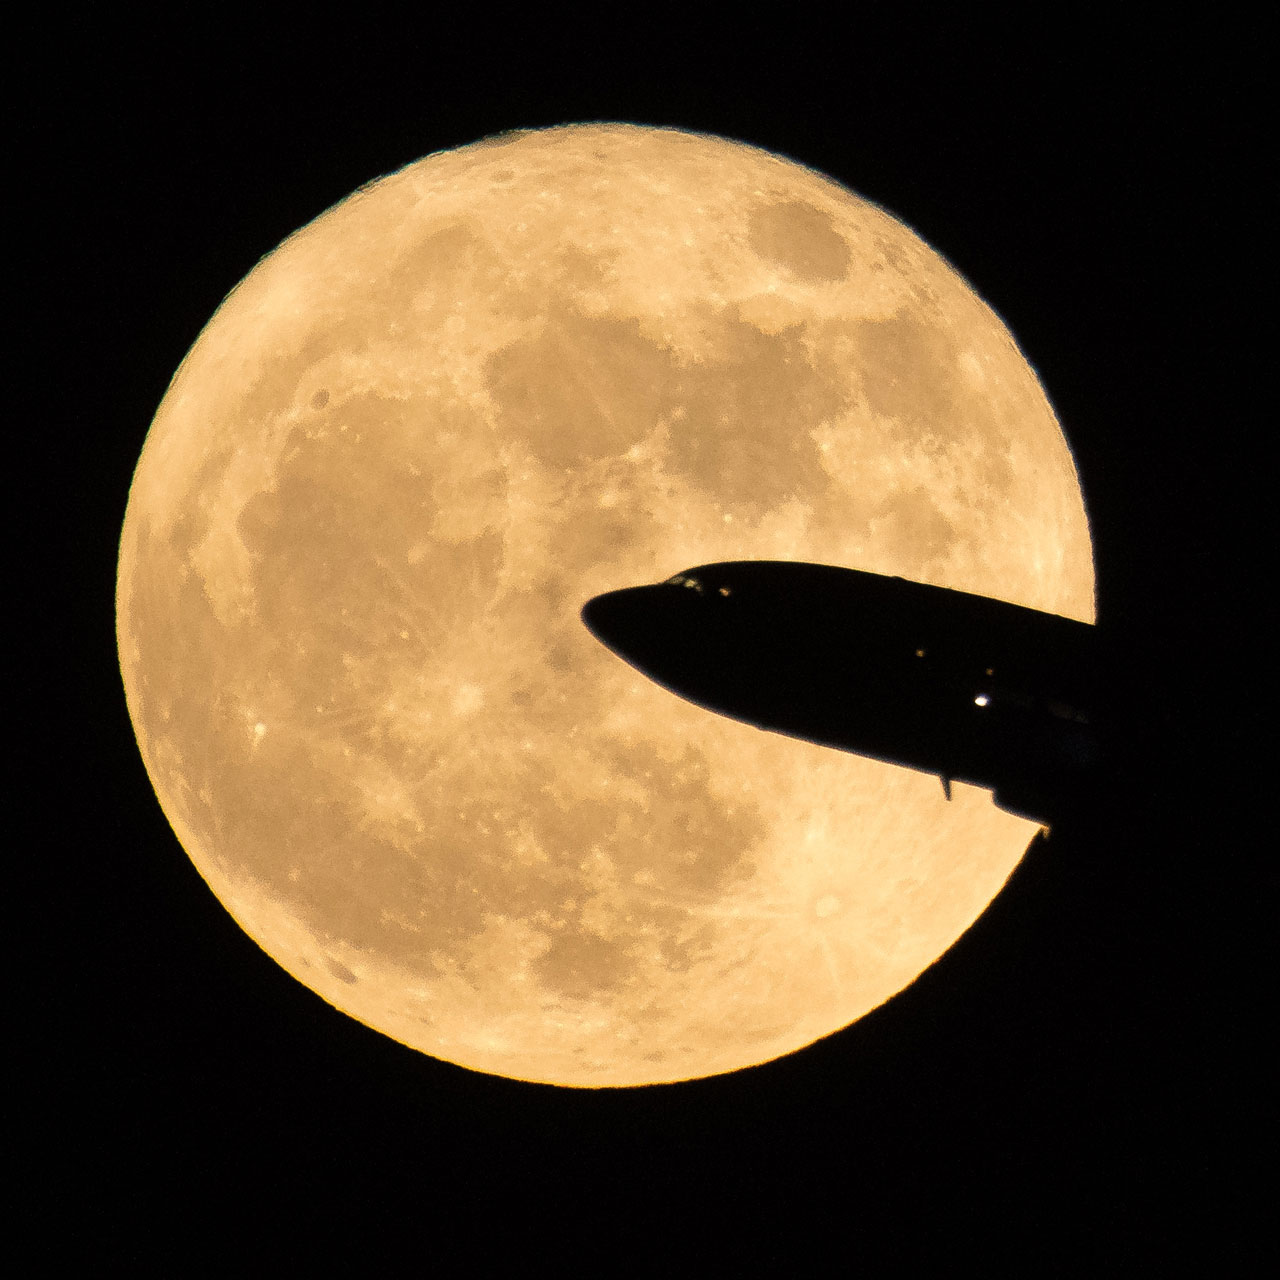 Airline silhouette in front of the Moon.